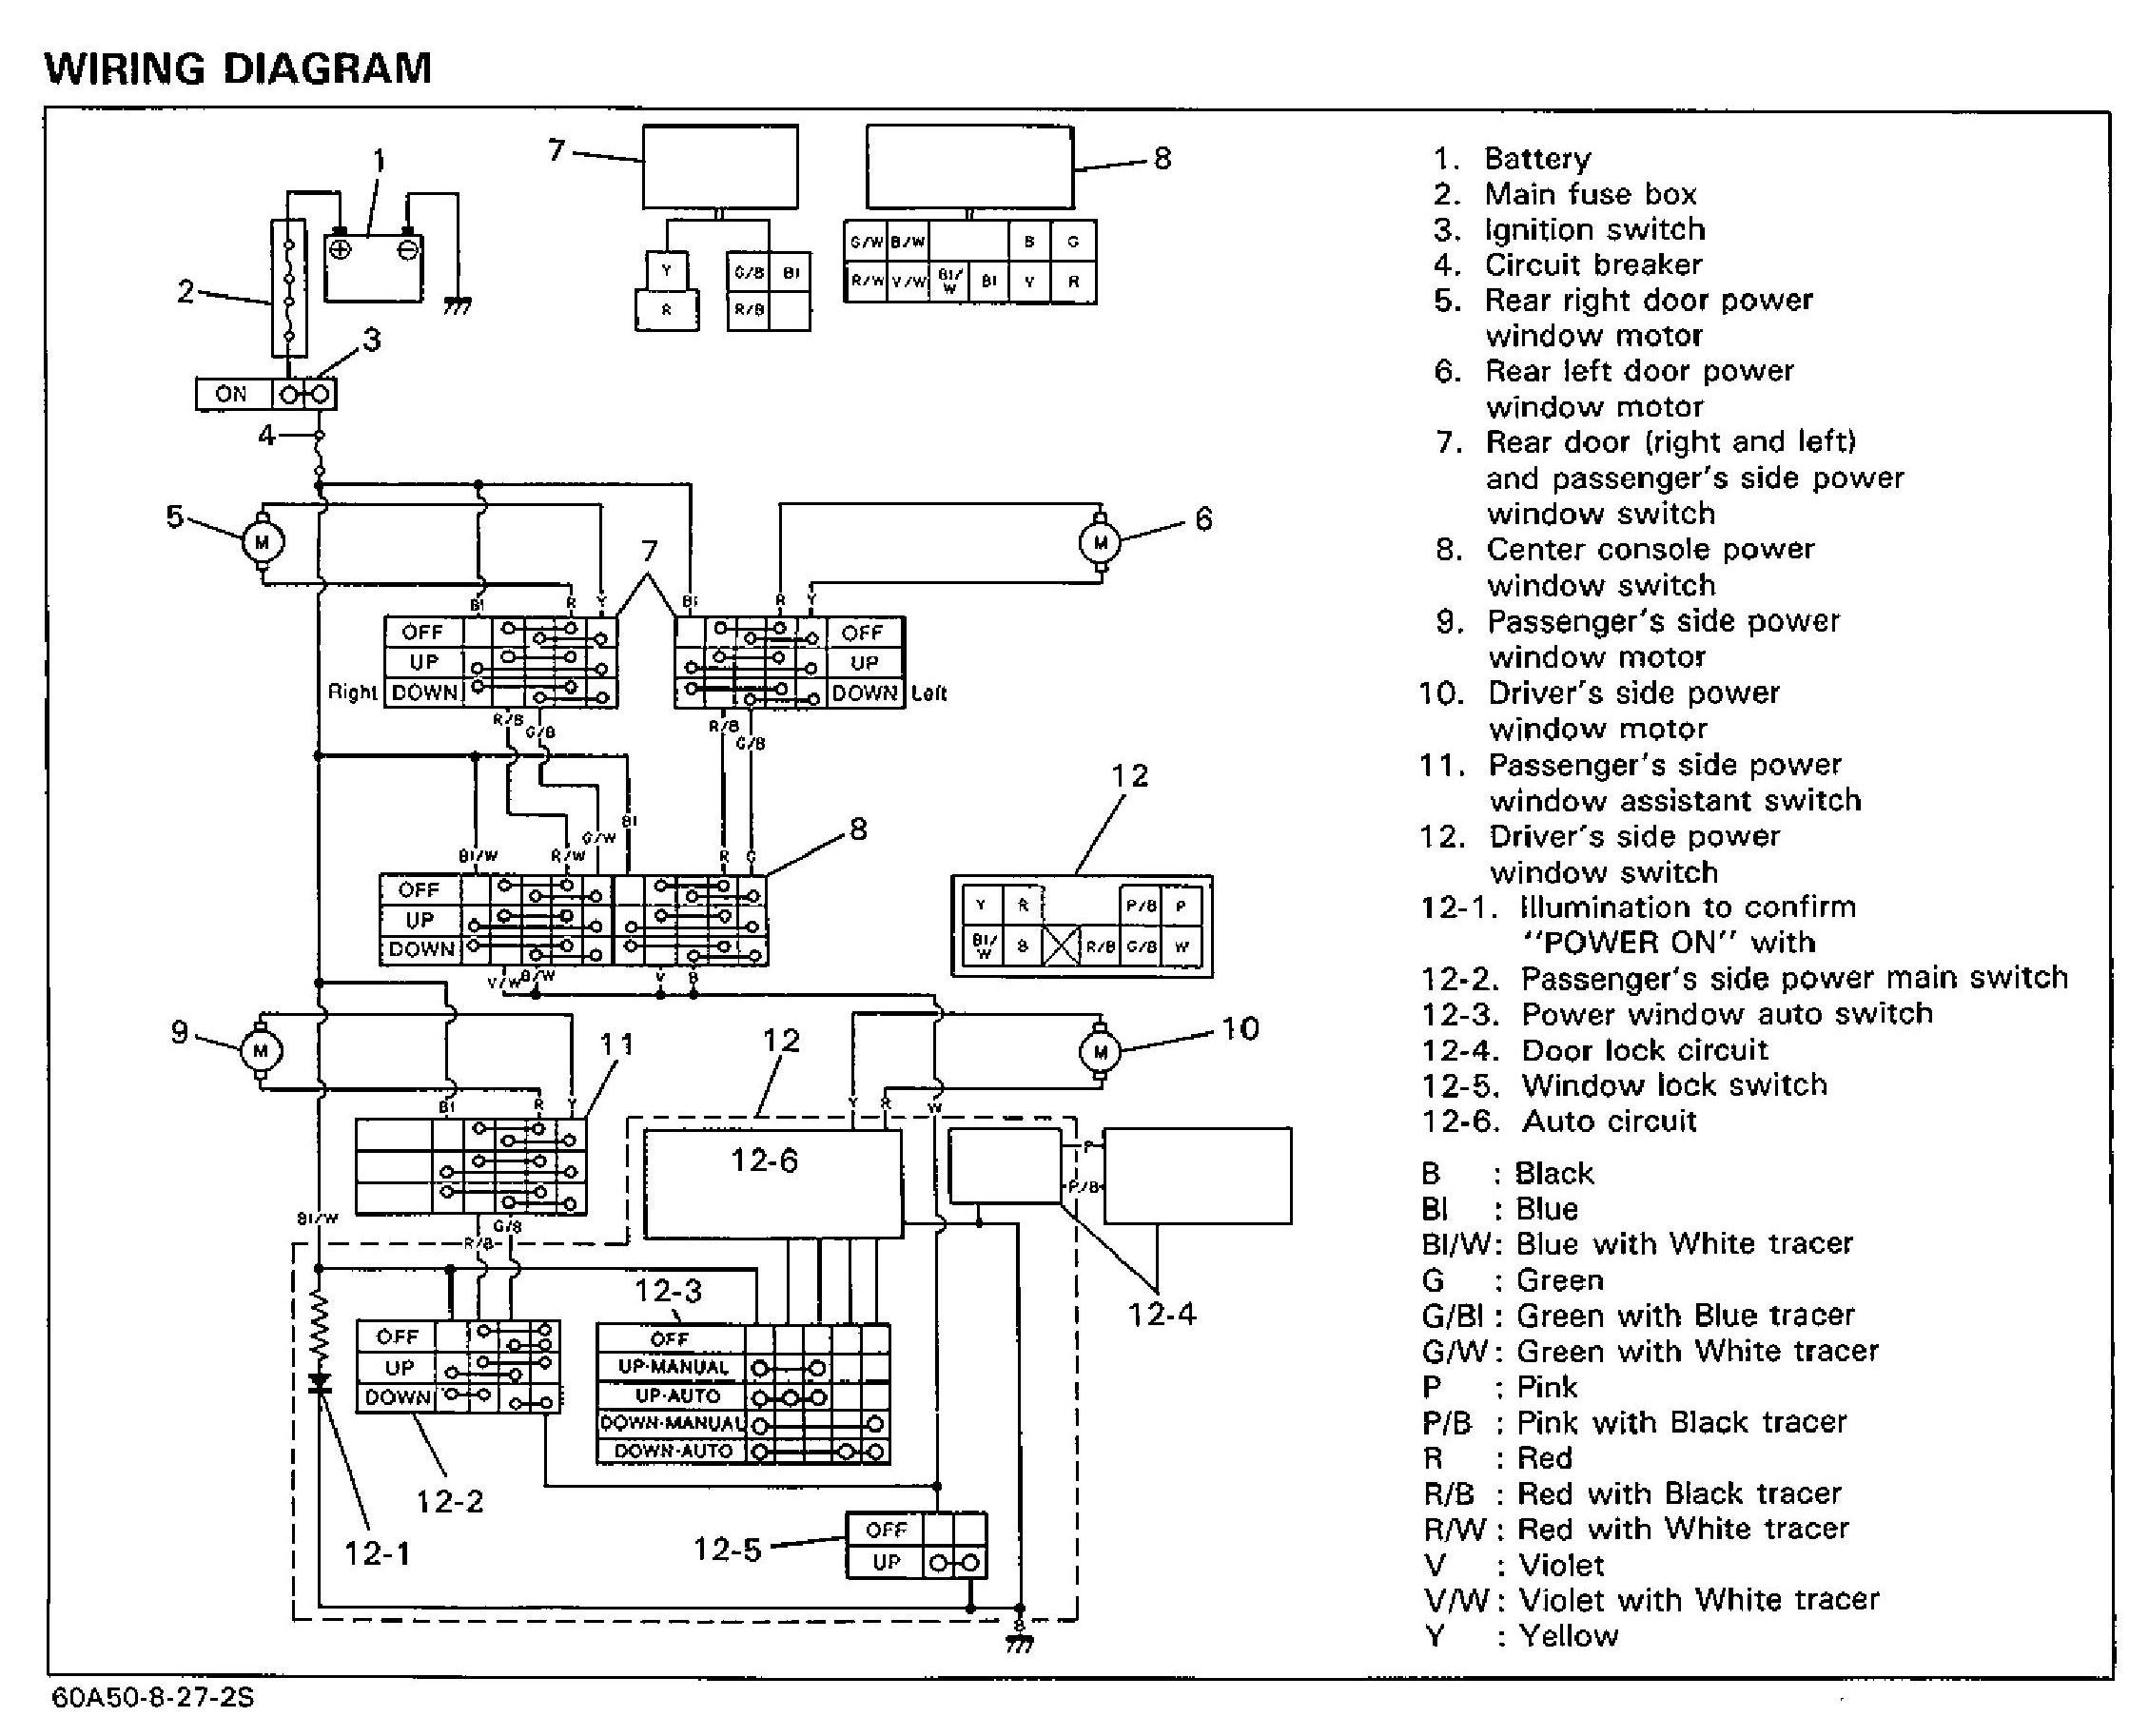 93 Geo Prizm Fuse Diagram